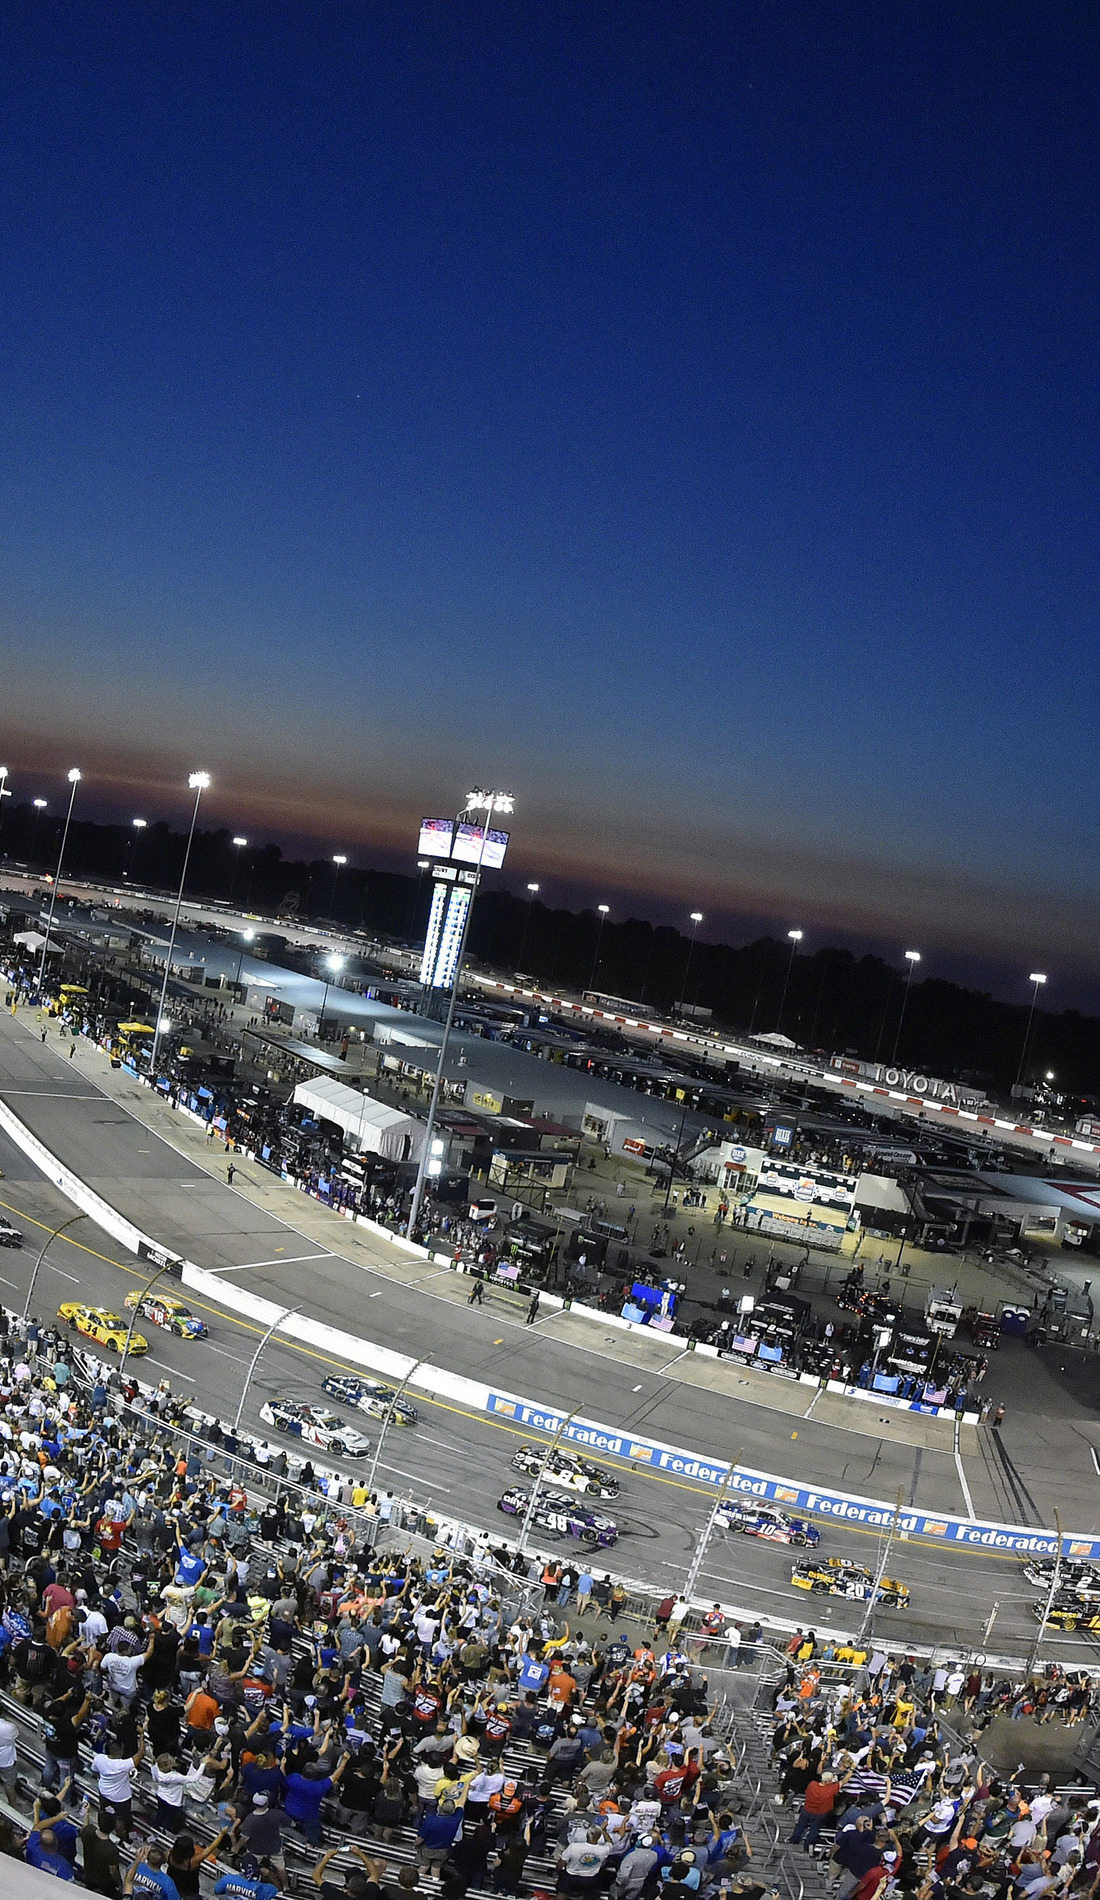 A Federated Auto Parts 400 live event